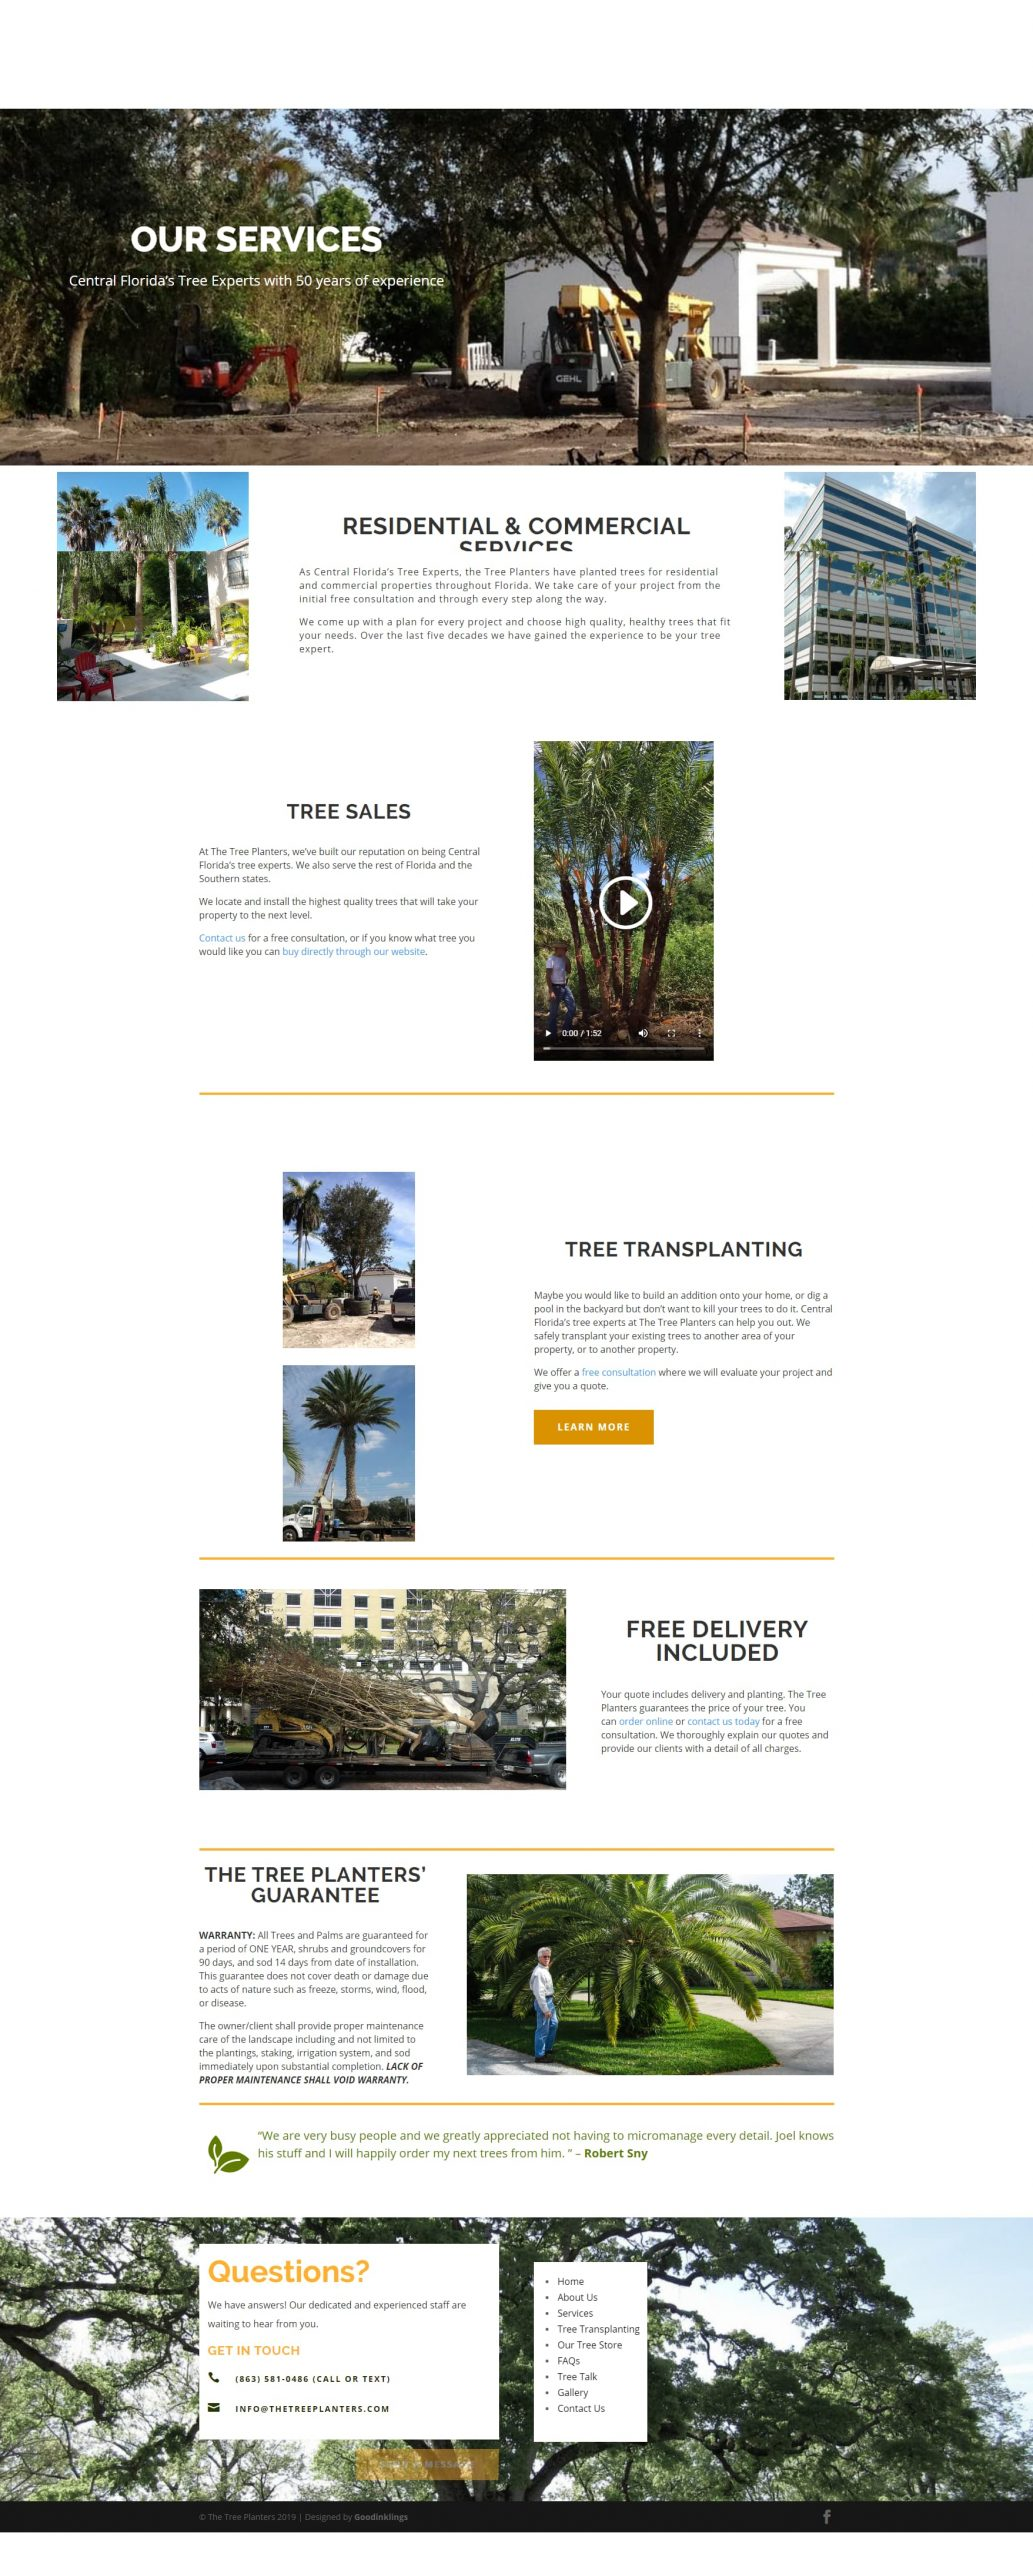 Goodinklings Web Design